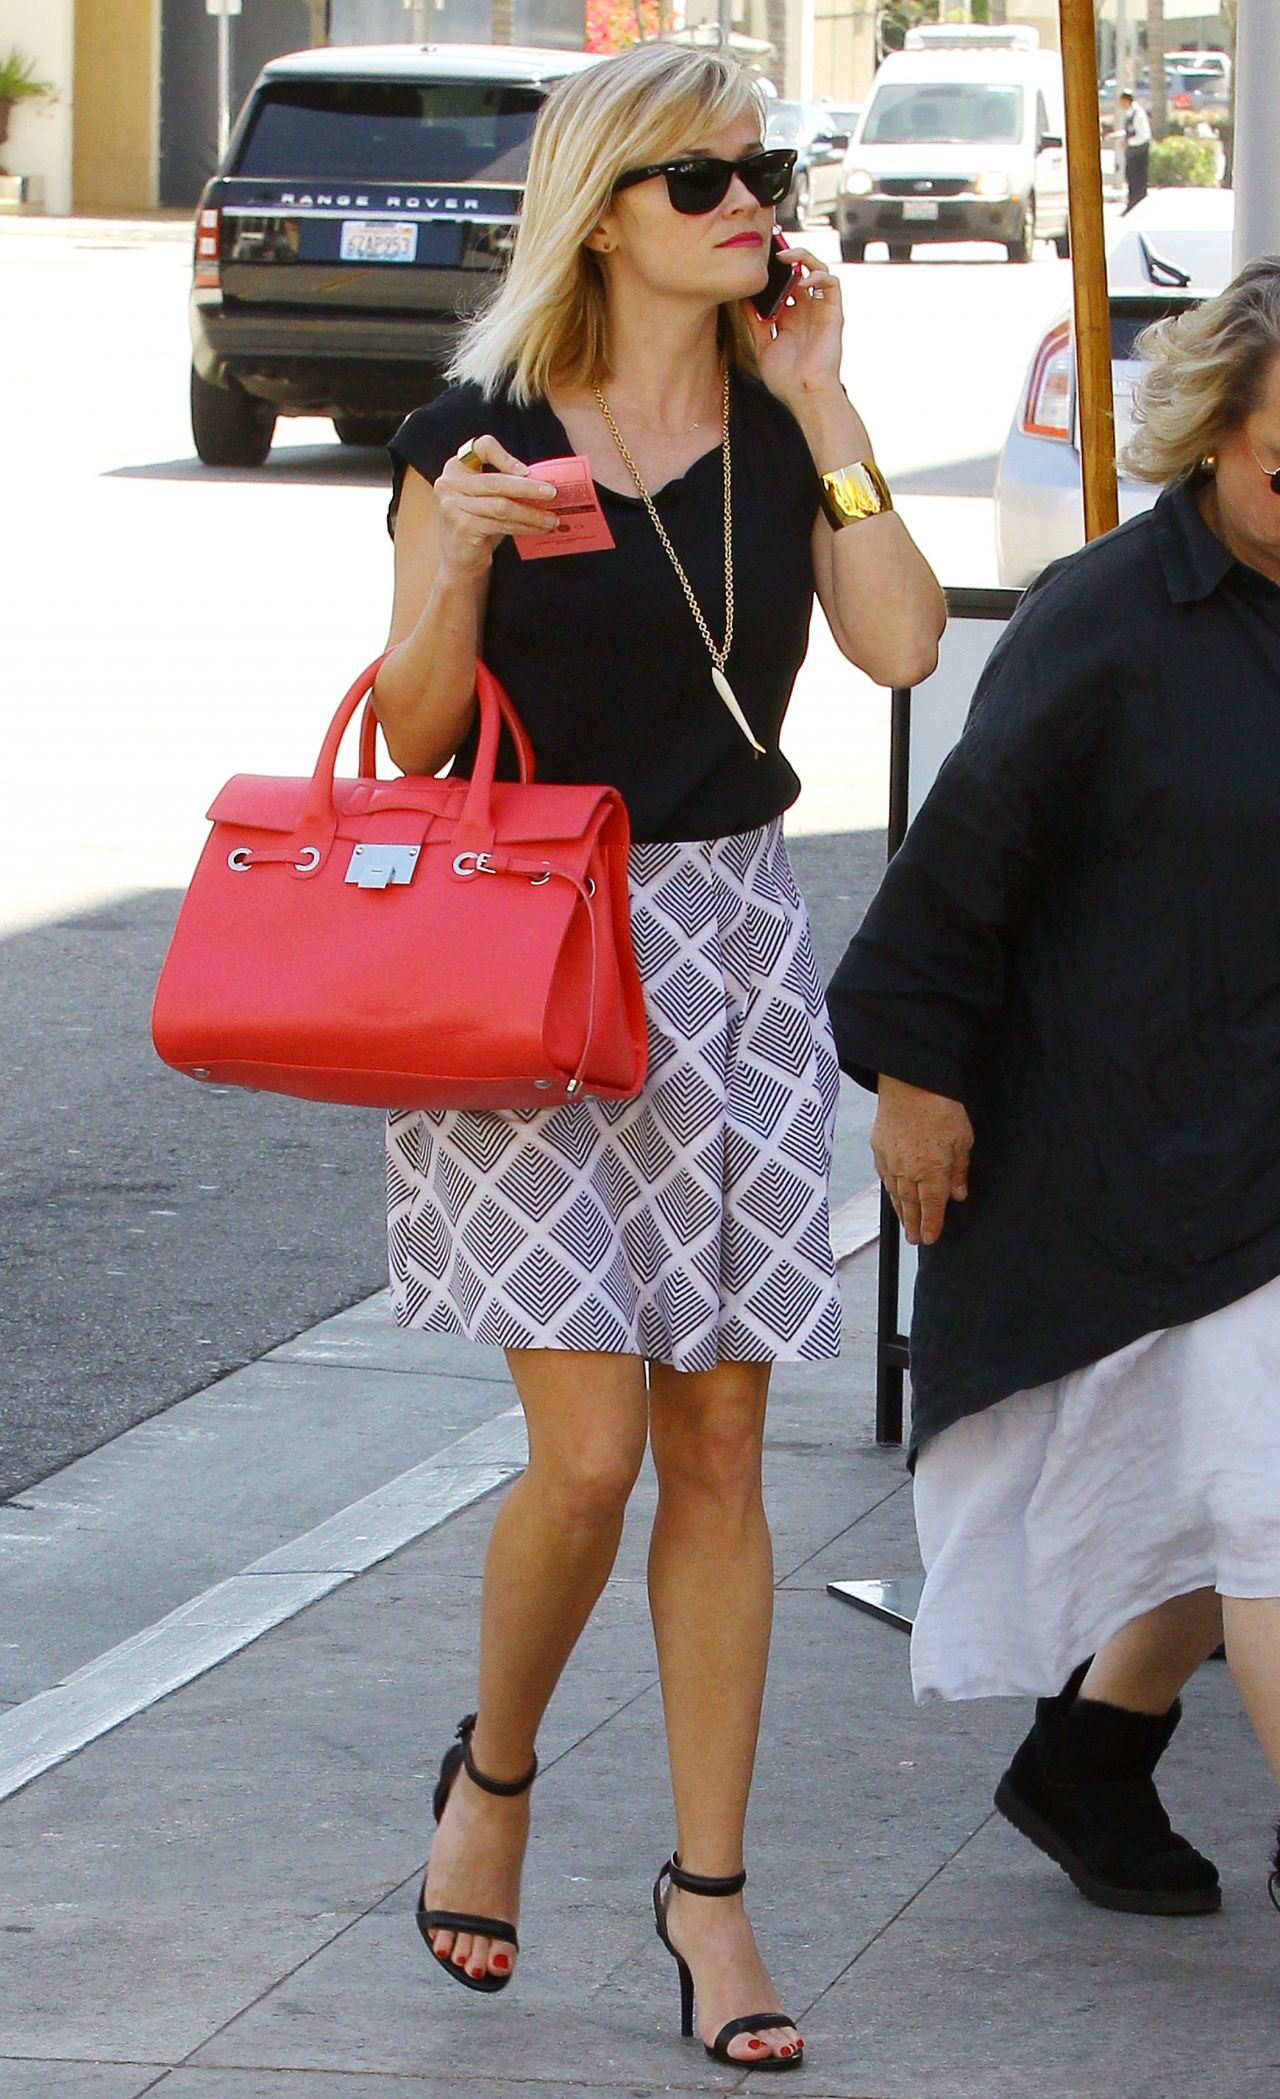 Reese Witherspoon Flaunts Legs in Miniskirt - Bouchon in Beverly Hills - March 2014